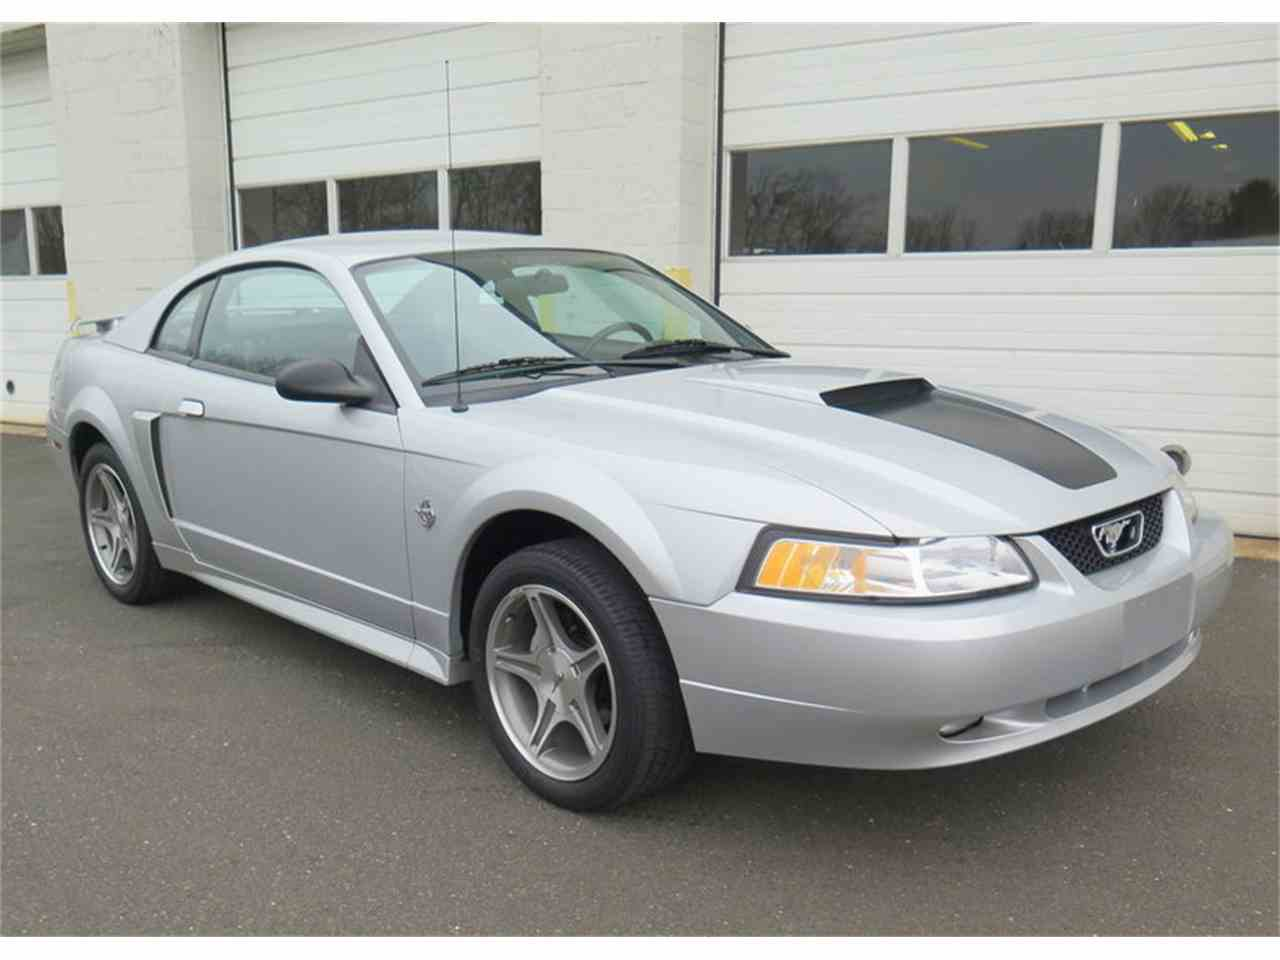 Ford ford mustang 99 : 1999 Ford Mustang GT for Sale | ClassicCars.com | CC-1078653